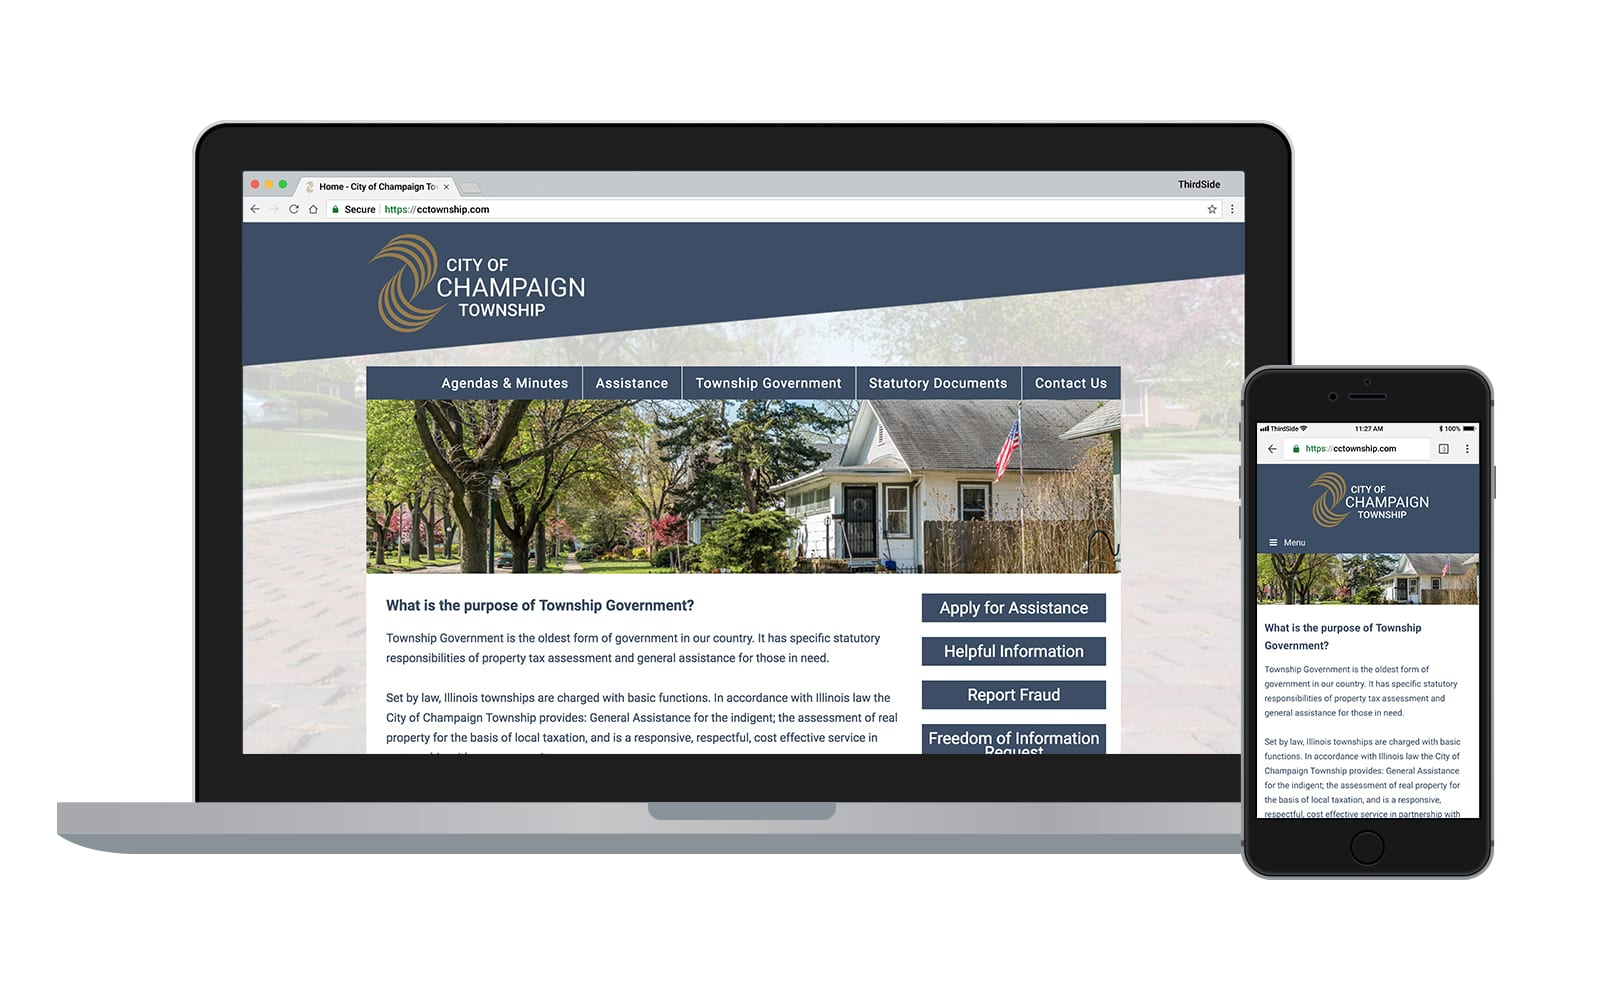 City of Champaign Township Web